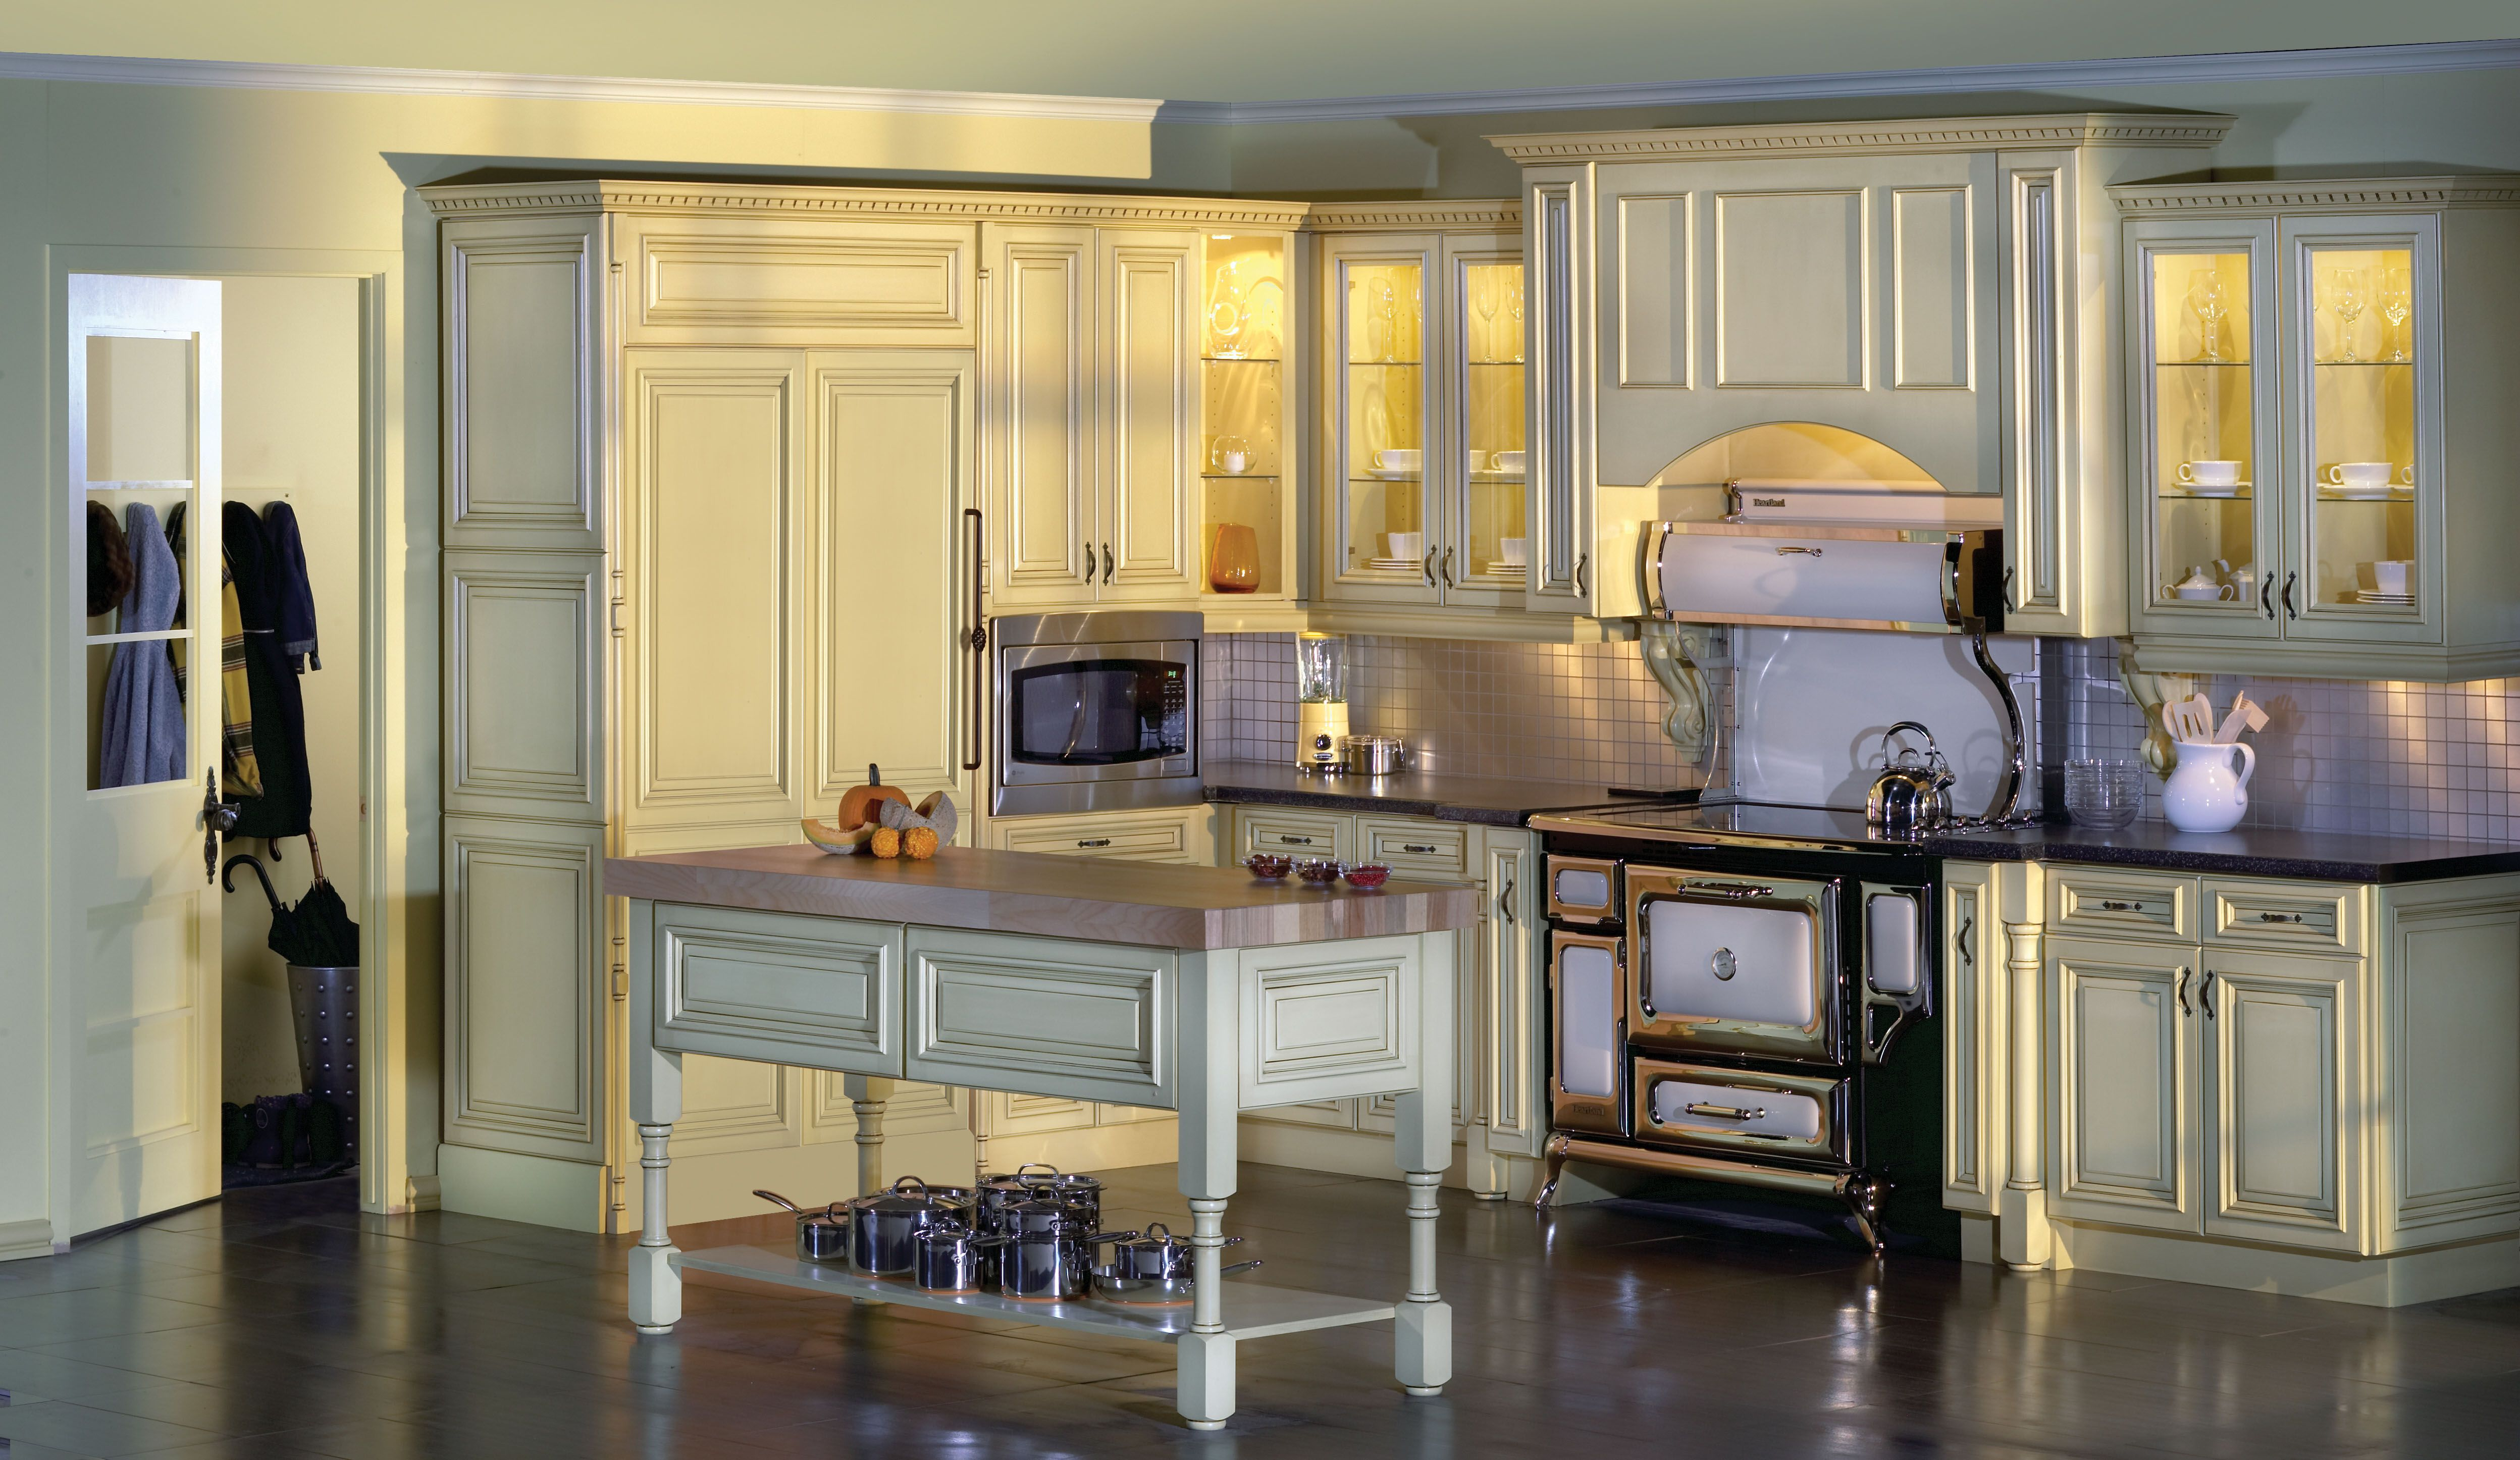 Traditional Kitchen from Fabritec Expressive #Fallidays #Kitchen #KitchenInspiration